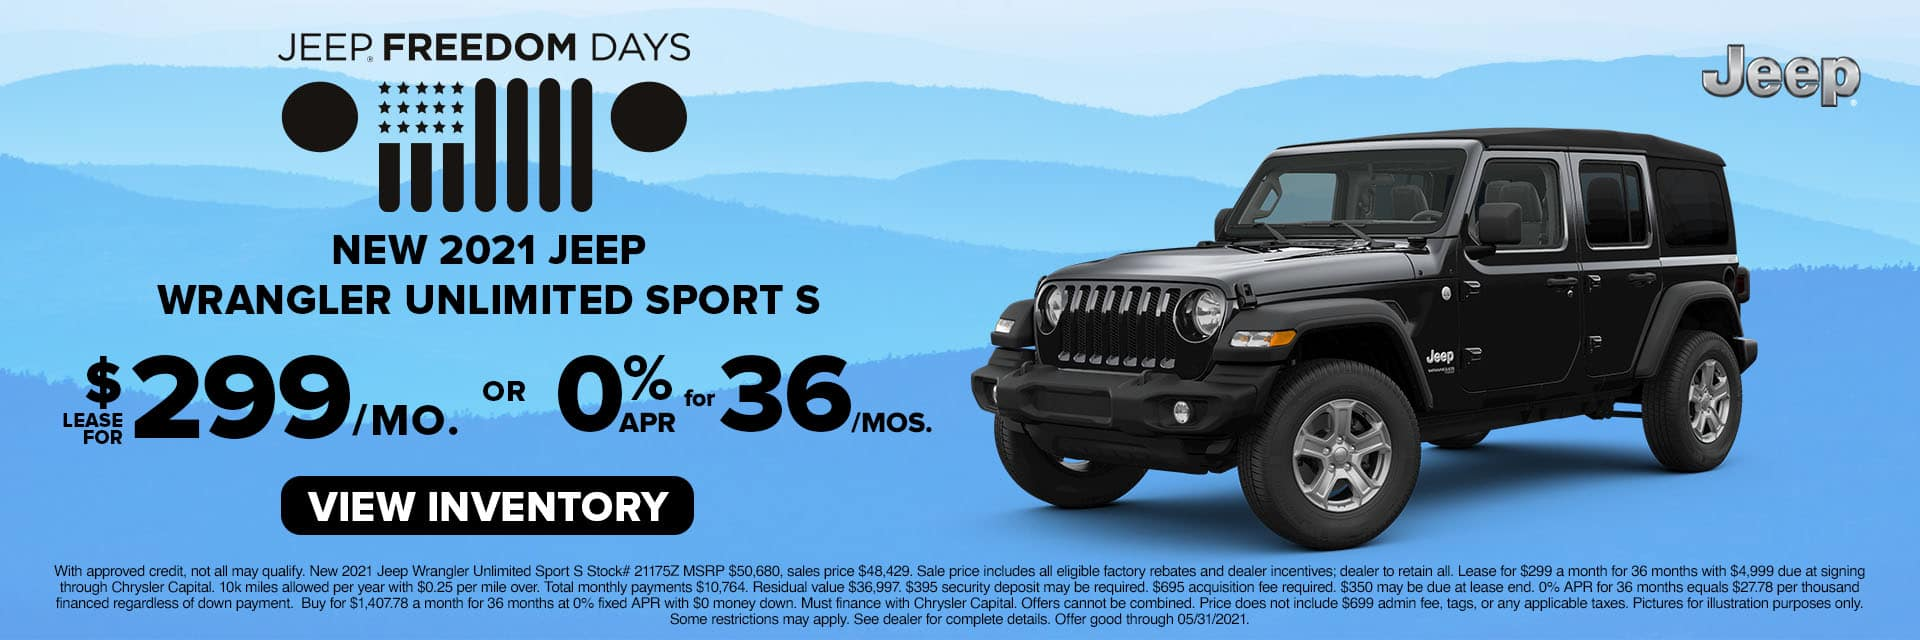 CLGO-May 2021-2021 Jeep Wrangler